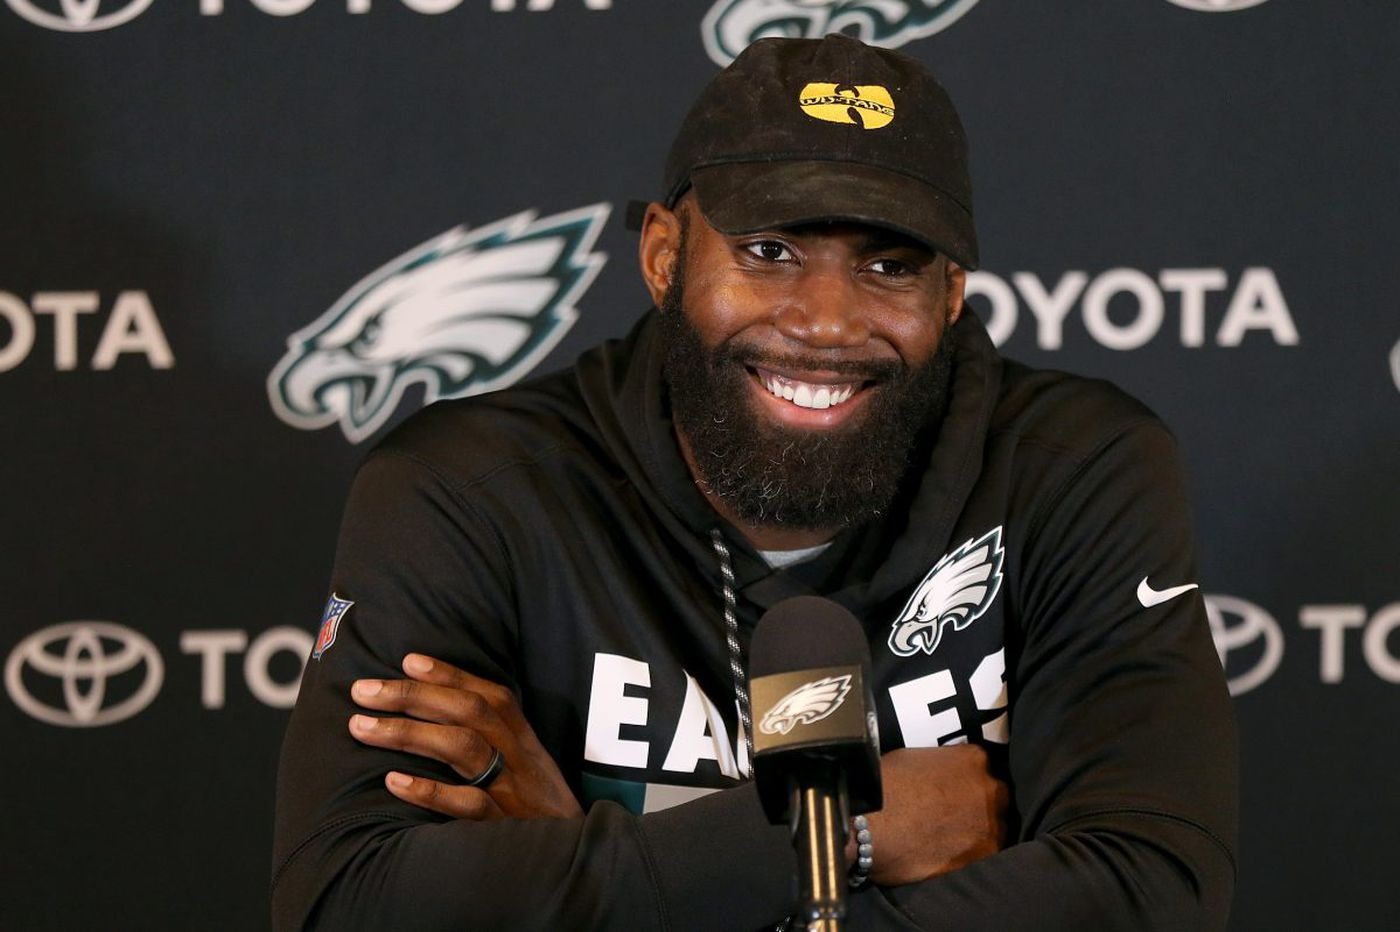 Eagles' Malcolm Jenkins: seems authorities 'are trying to make an example' out of Michael Bennett